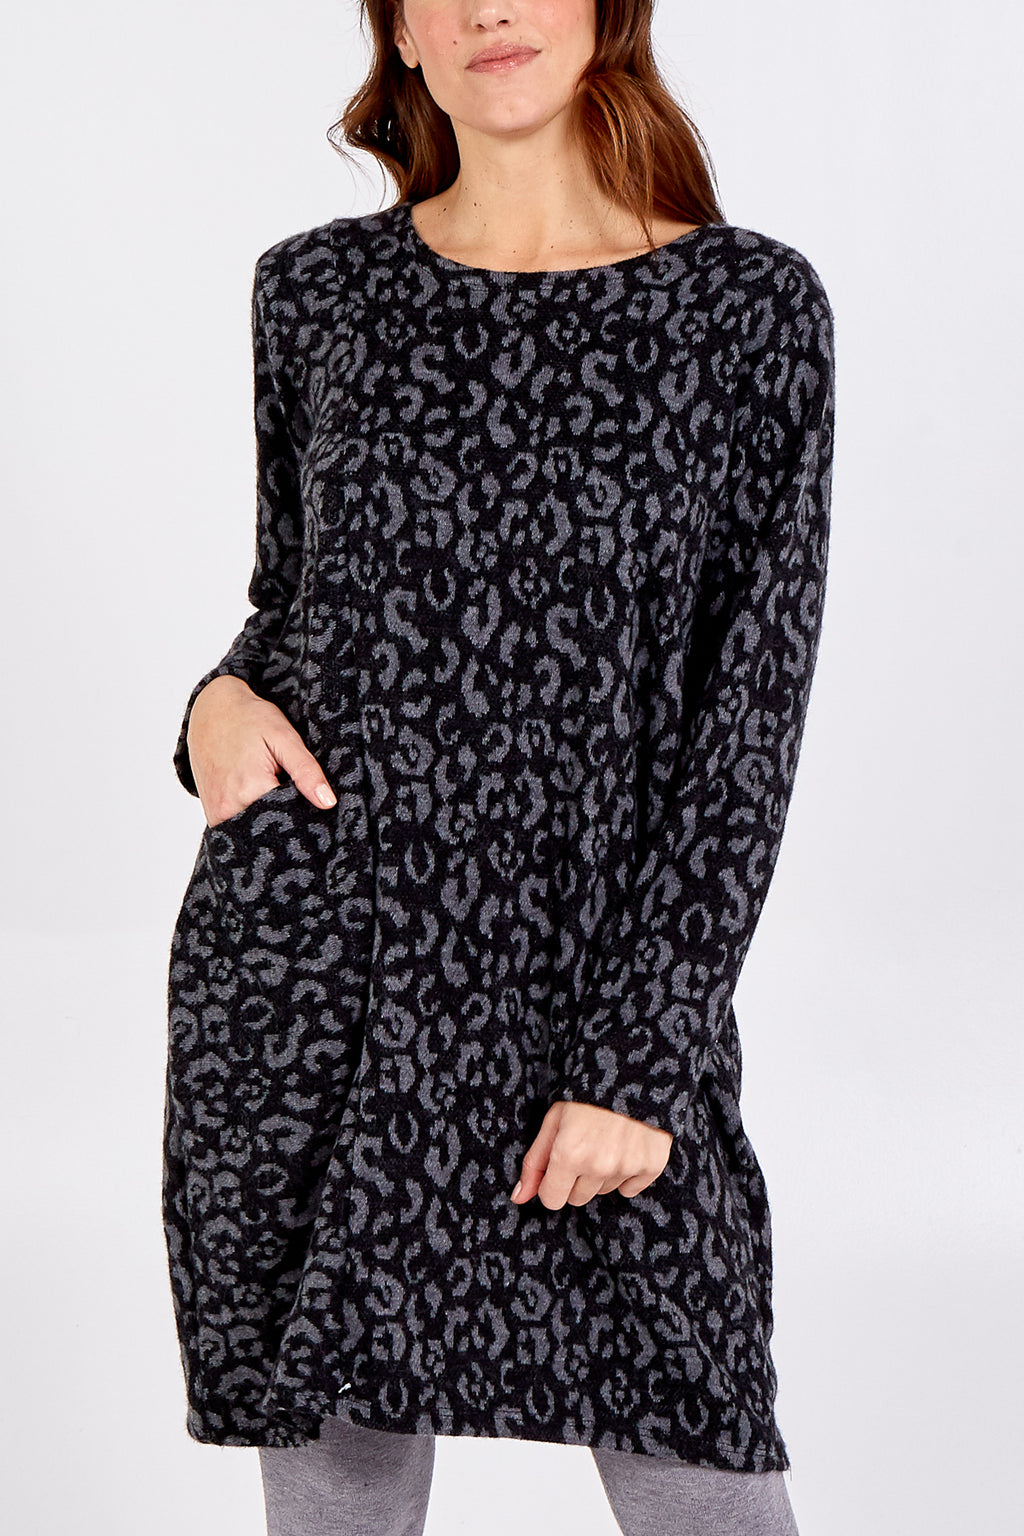 Leopard Print Jumper Dress With Front Pockets